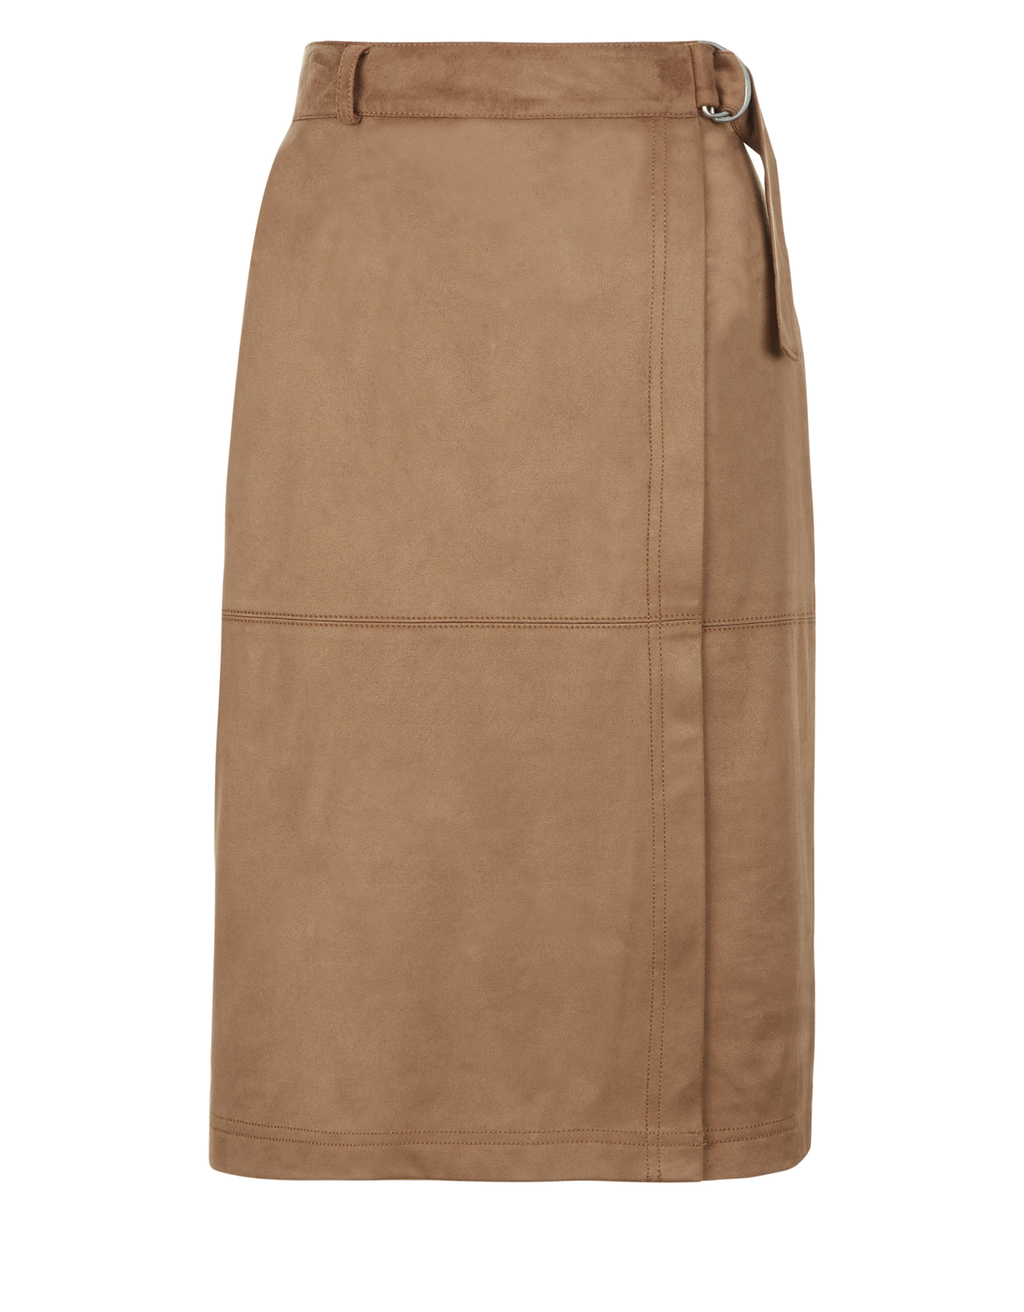 Arya Suedette Skirt - pattern: plain; style: pencil; fit: body skimming; waist detail: belted waist/tie at waist/drawstring; waist: mid/regular rise; predominant colour: camel; occasions: casual; length: on the knee; fibres: polyester/polyamide - stretch; pattern type: fabric; texture group: suede; season: s/s 2016; wardrobe: highlight